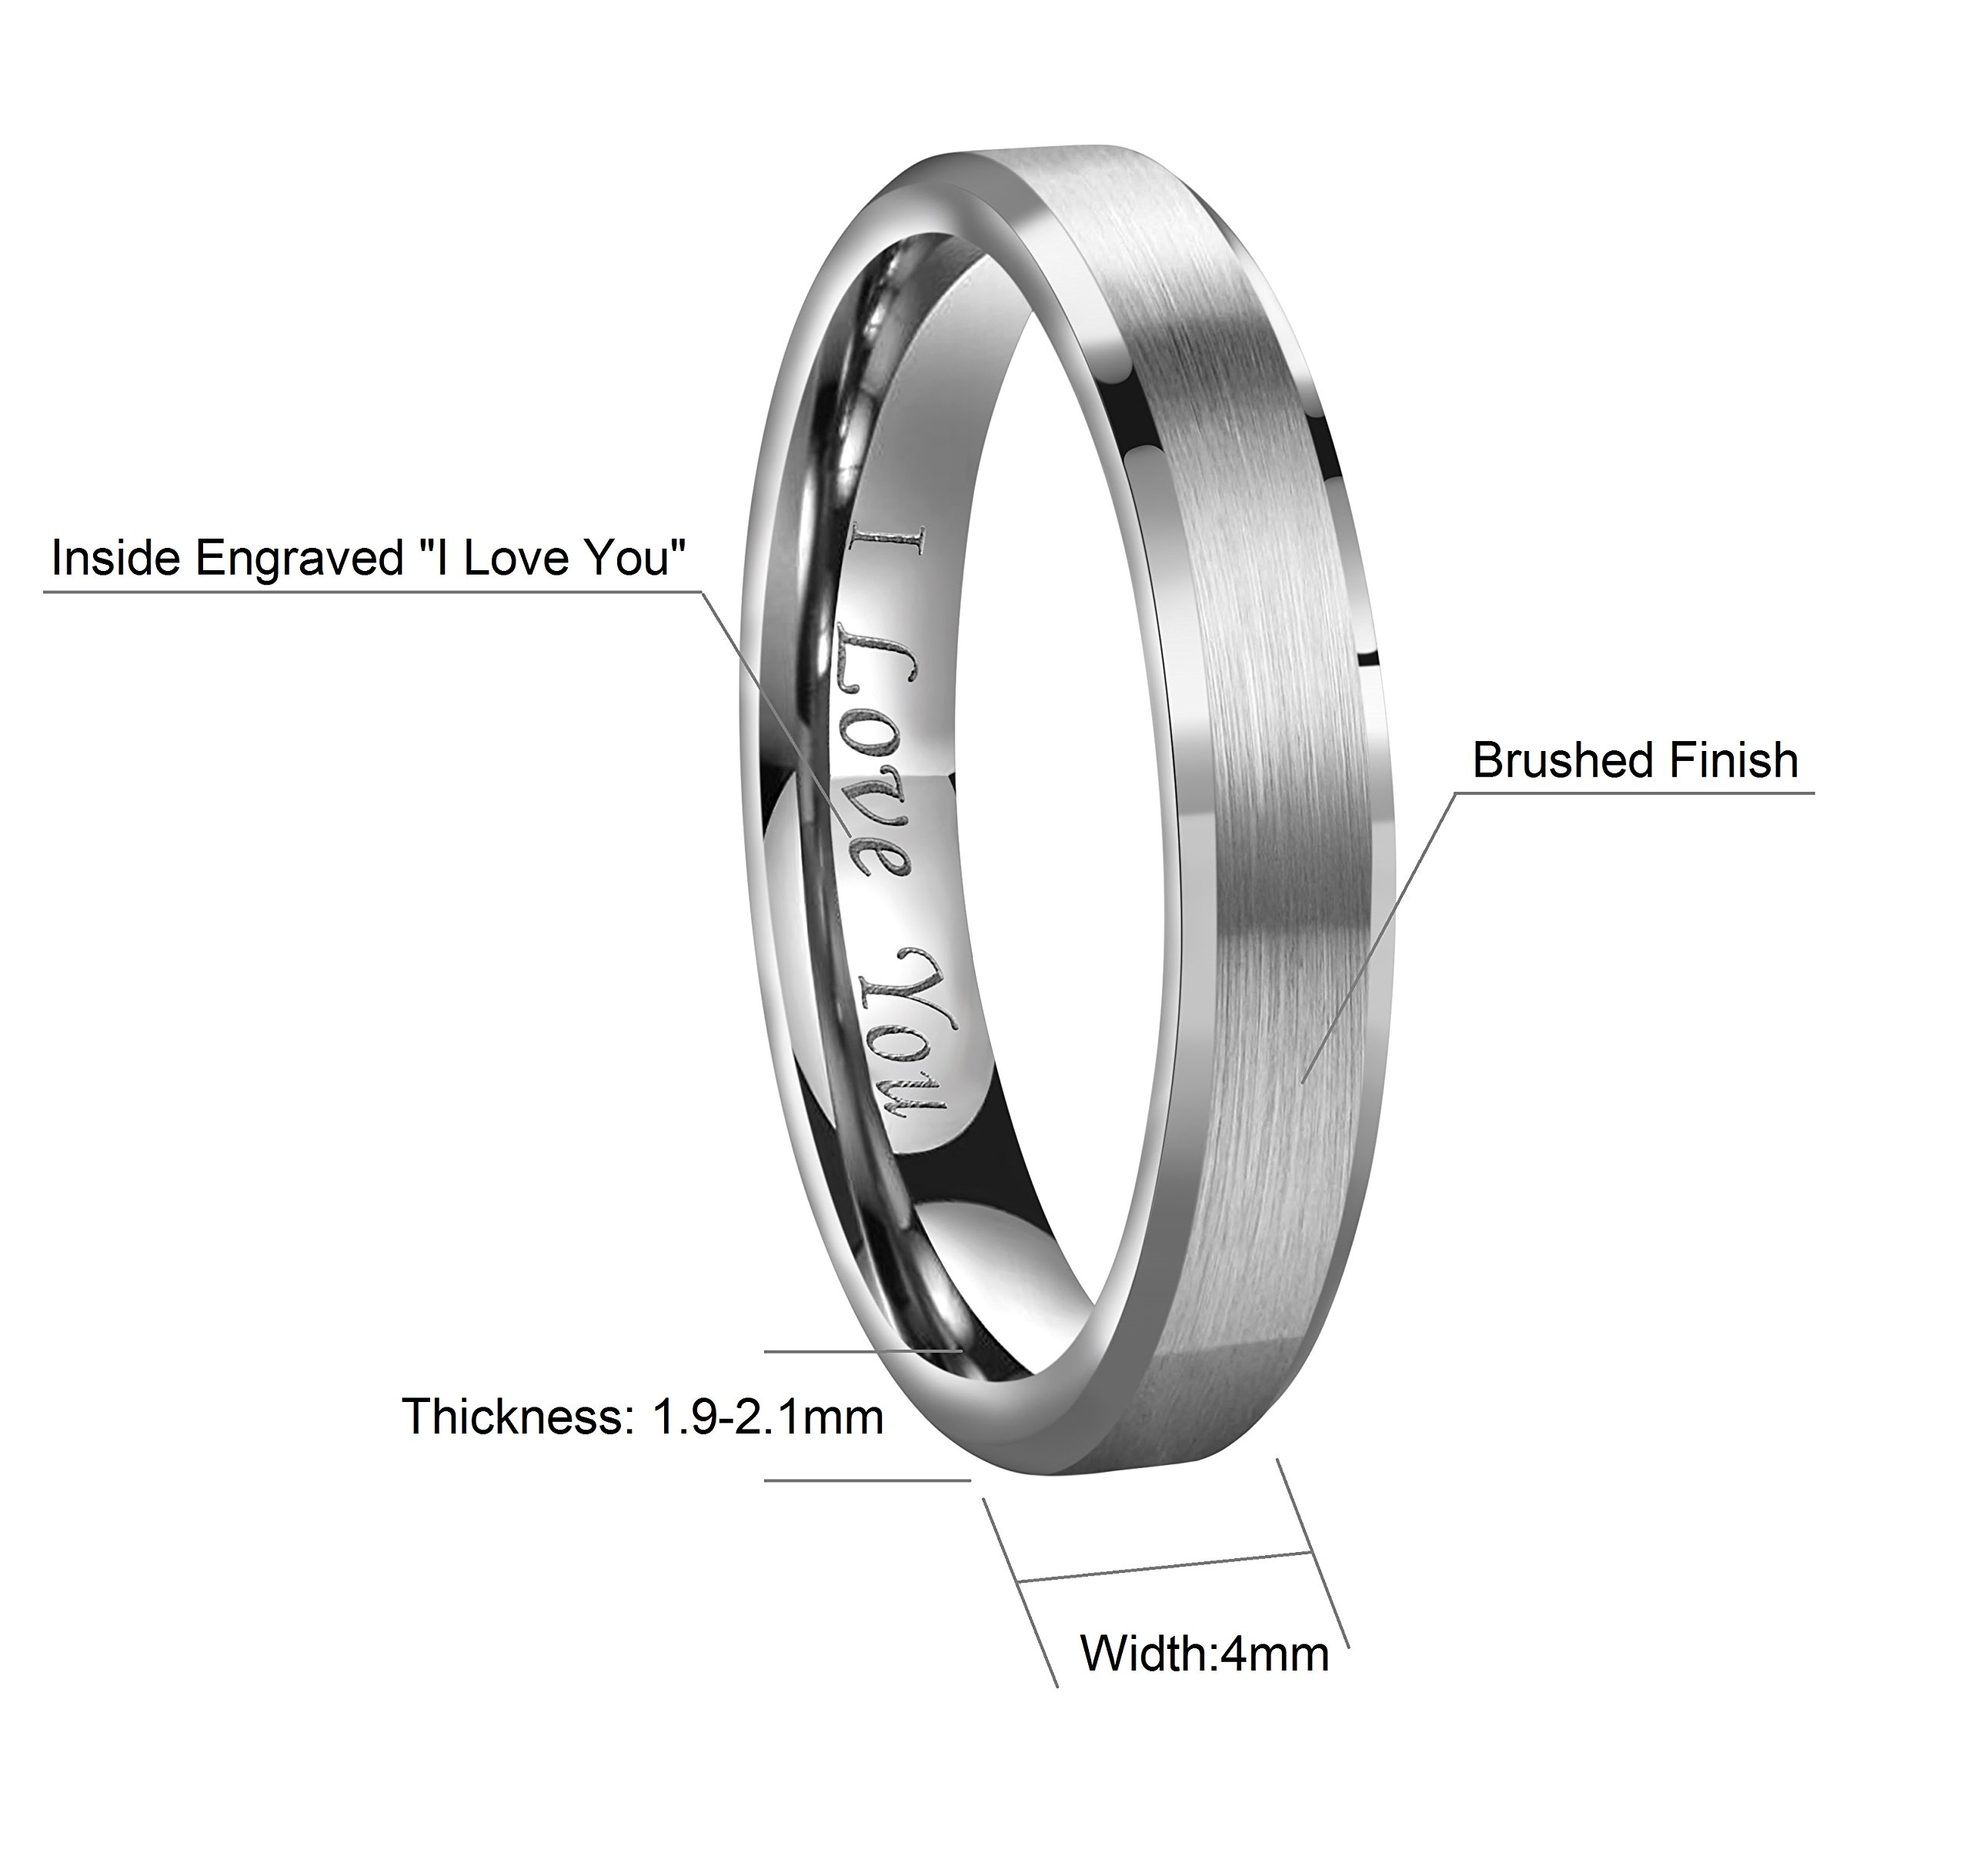 CROWNAL 4mm/6mm/8mm Tungsten Couple Wedding Bands Rings Men Women Brushed Finish Beveled Edges Engraved I Love You Size 4 To 17 (4mm,5) by CROWNAL (Image #2)